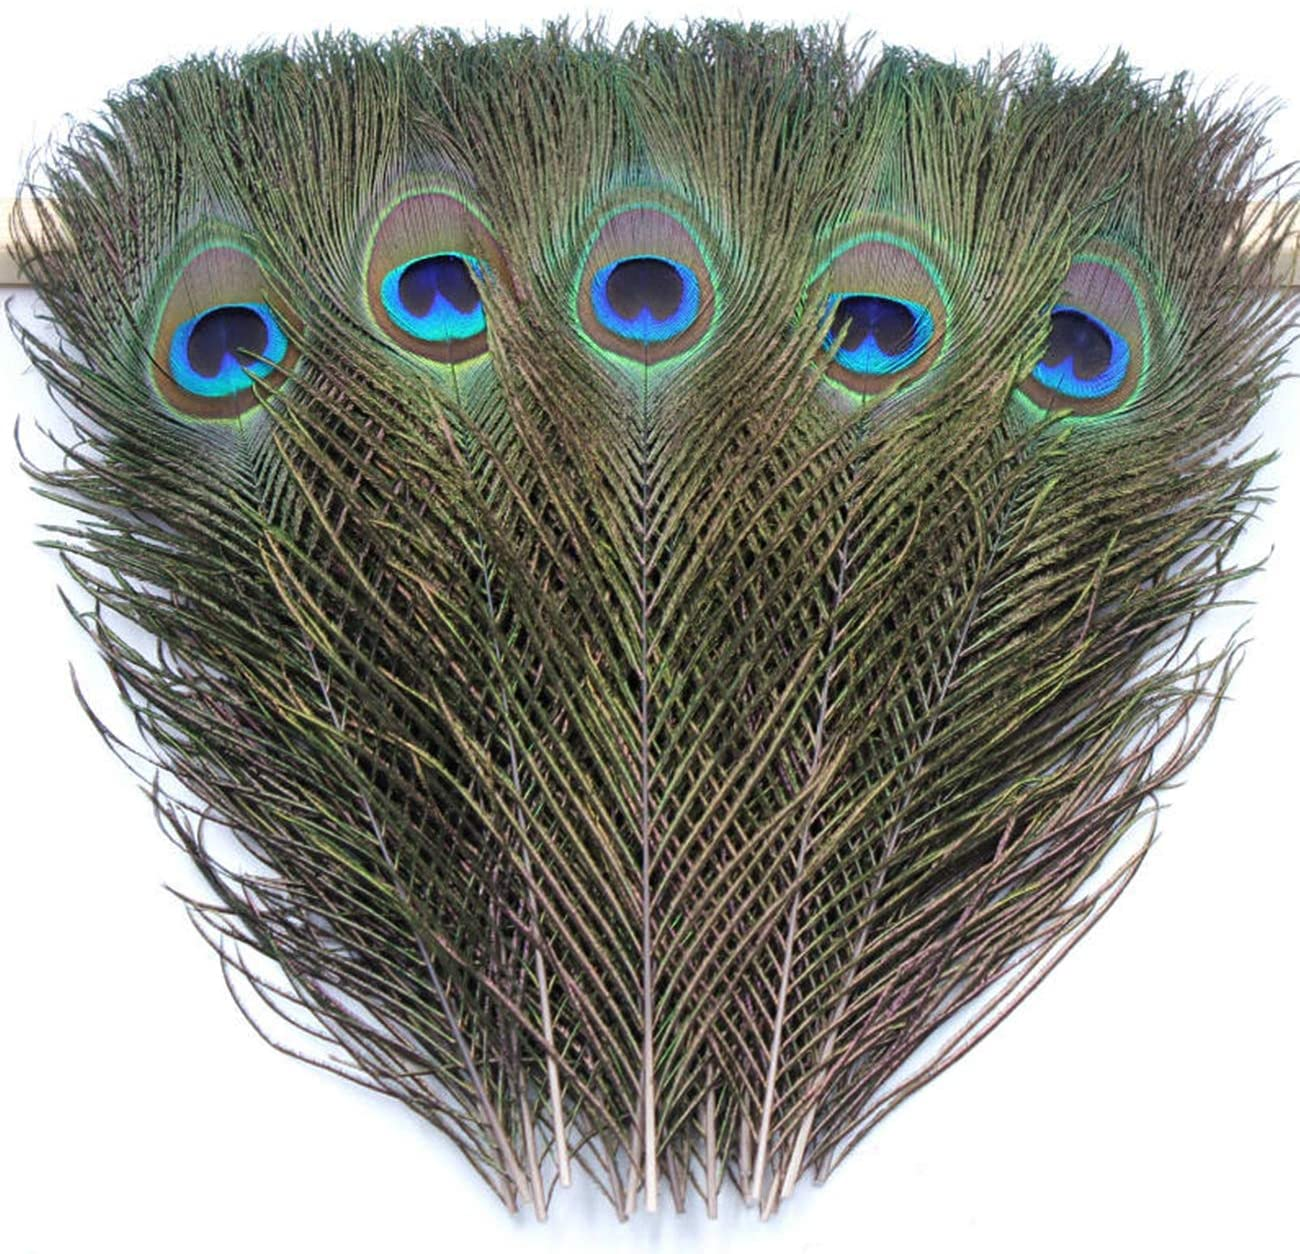 TinaWood Natural Peacock Sale Eye 25% OFF Feathers 9.8-11.8 Craf DIY inch for